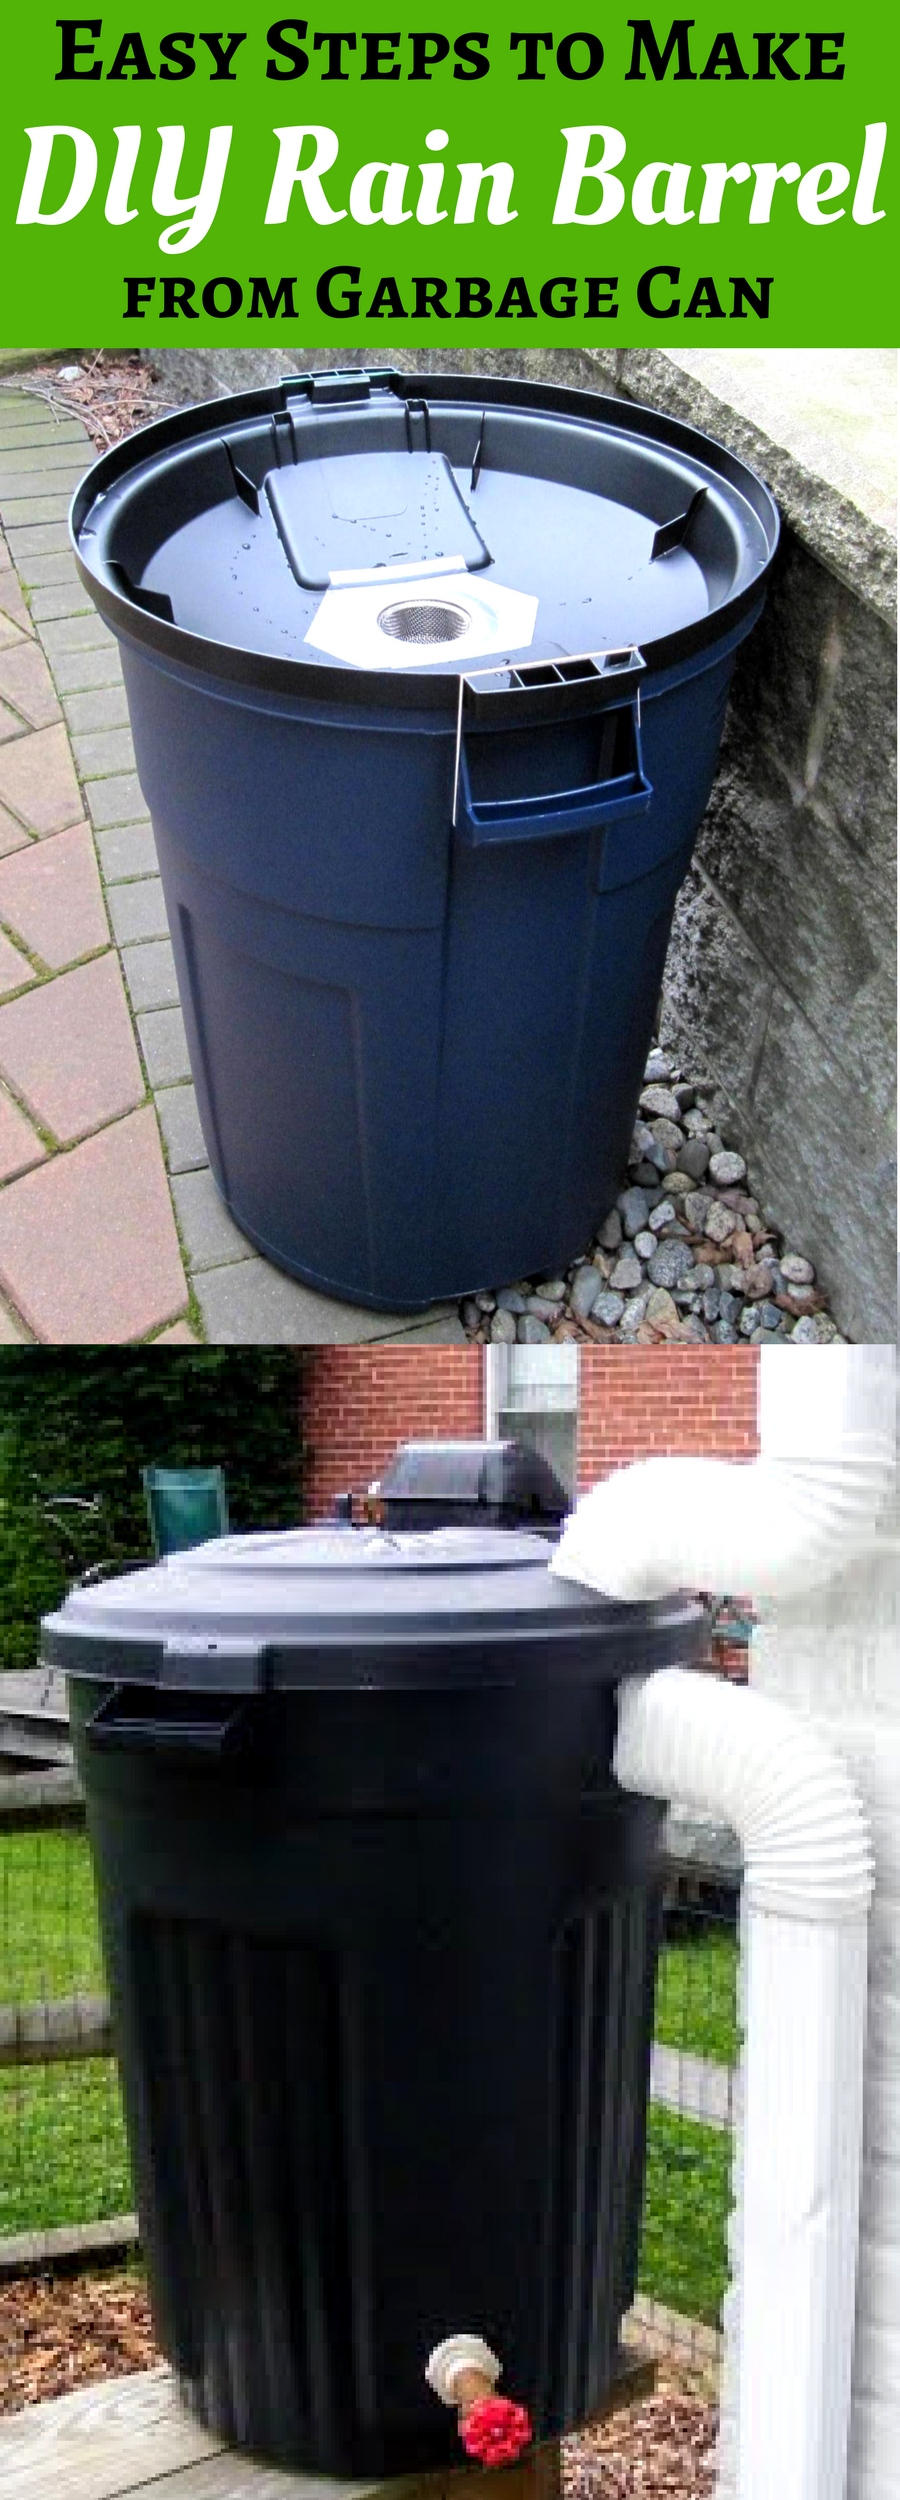 Easy Steps to Make DIY Rain Barrel from Garbage Can